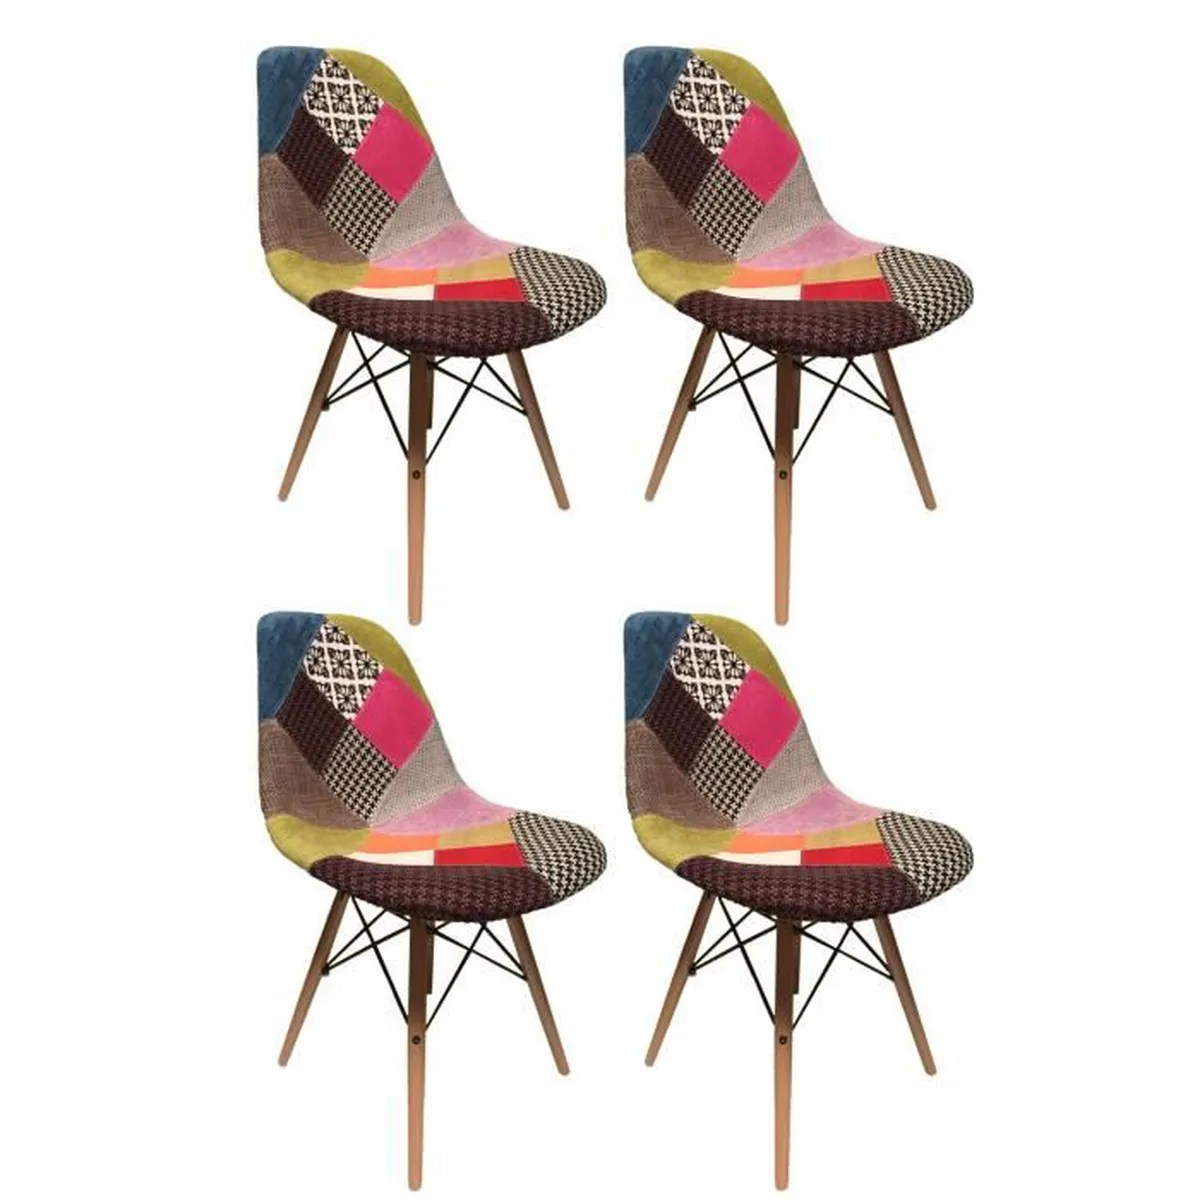 Lot 6 Chaises Scandinaves Chaise Patchwork - Achat / Vente Chaise Patchwork Pas Cher